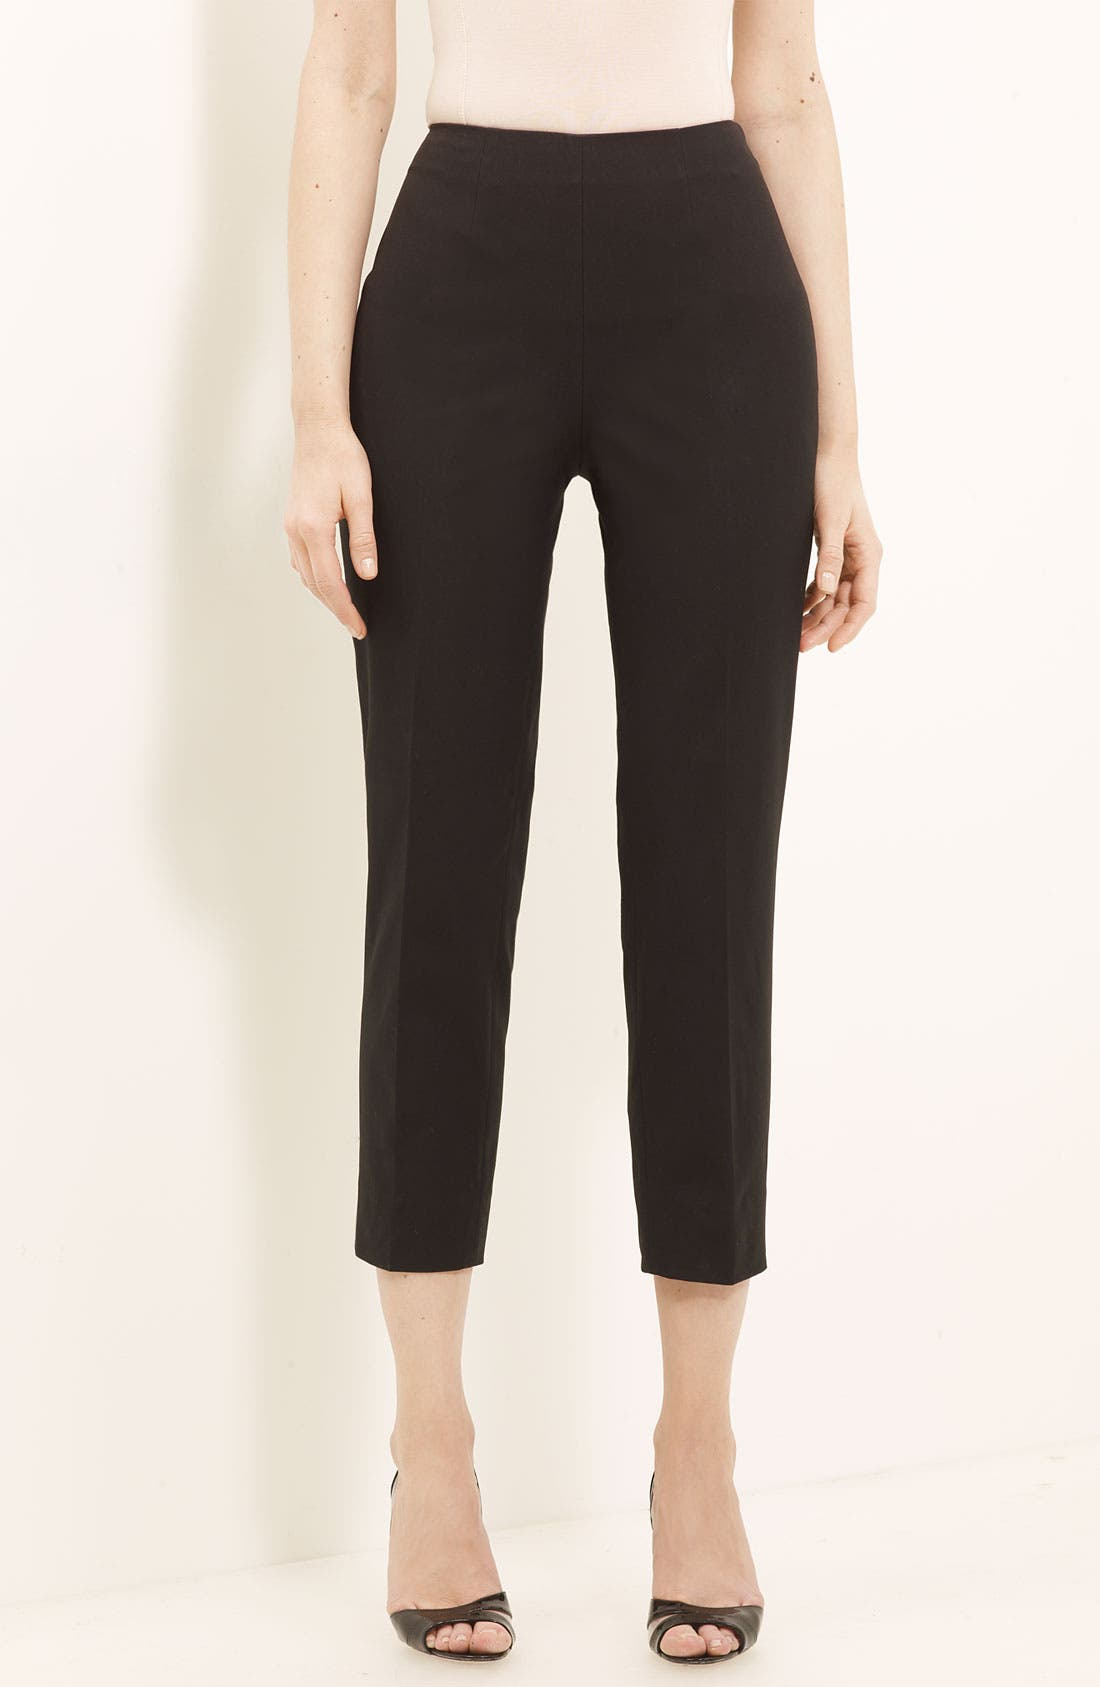 Alternate Image 1 Selected - Piazza Sempione 'Audrey' Stretch Cotton Pants